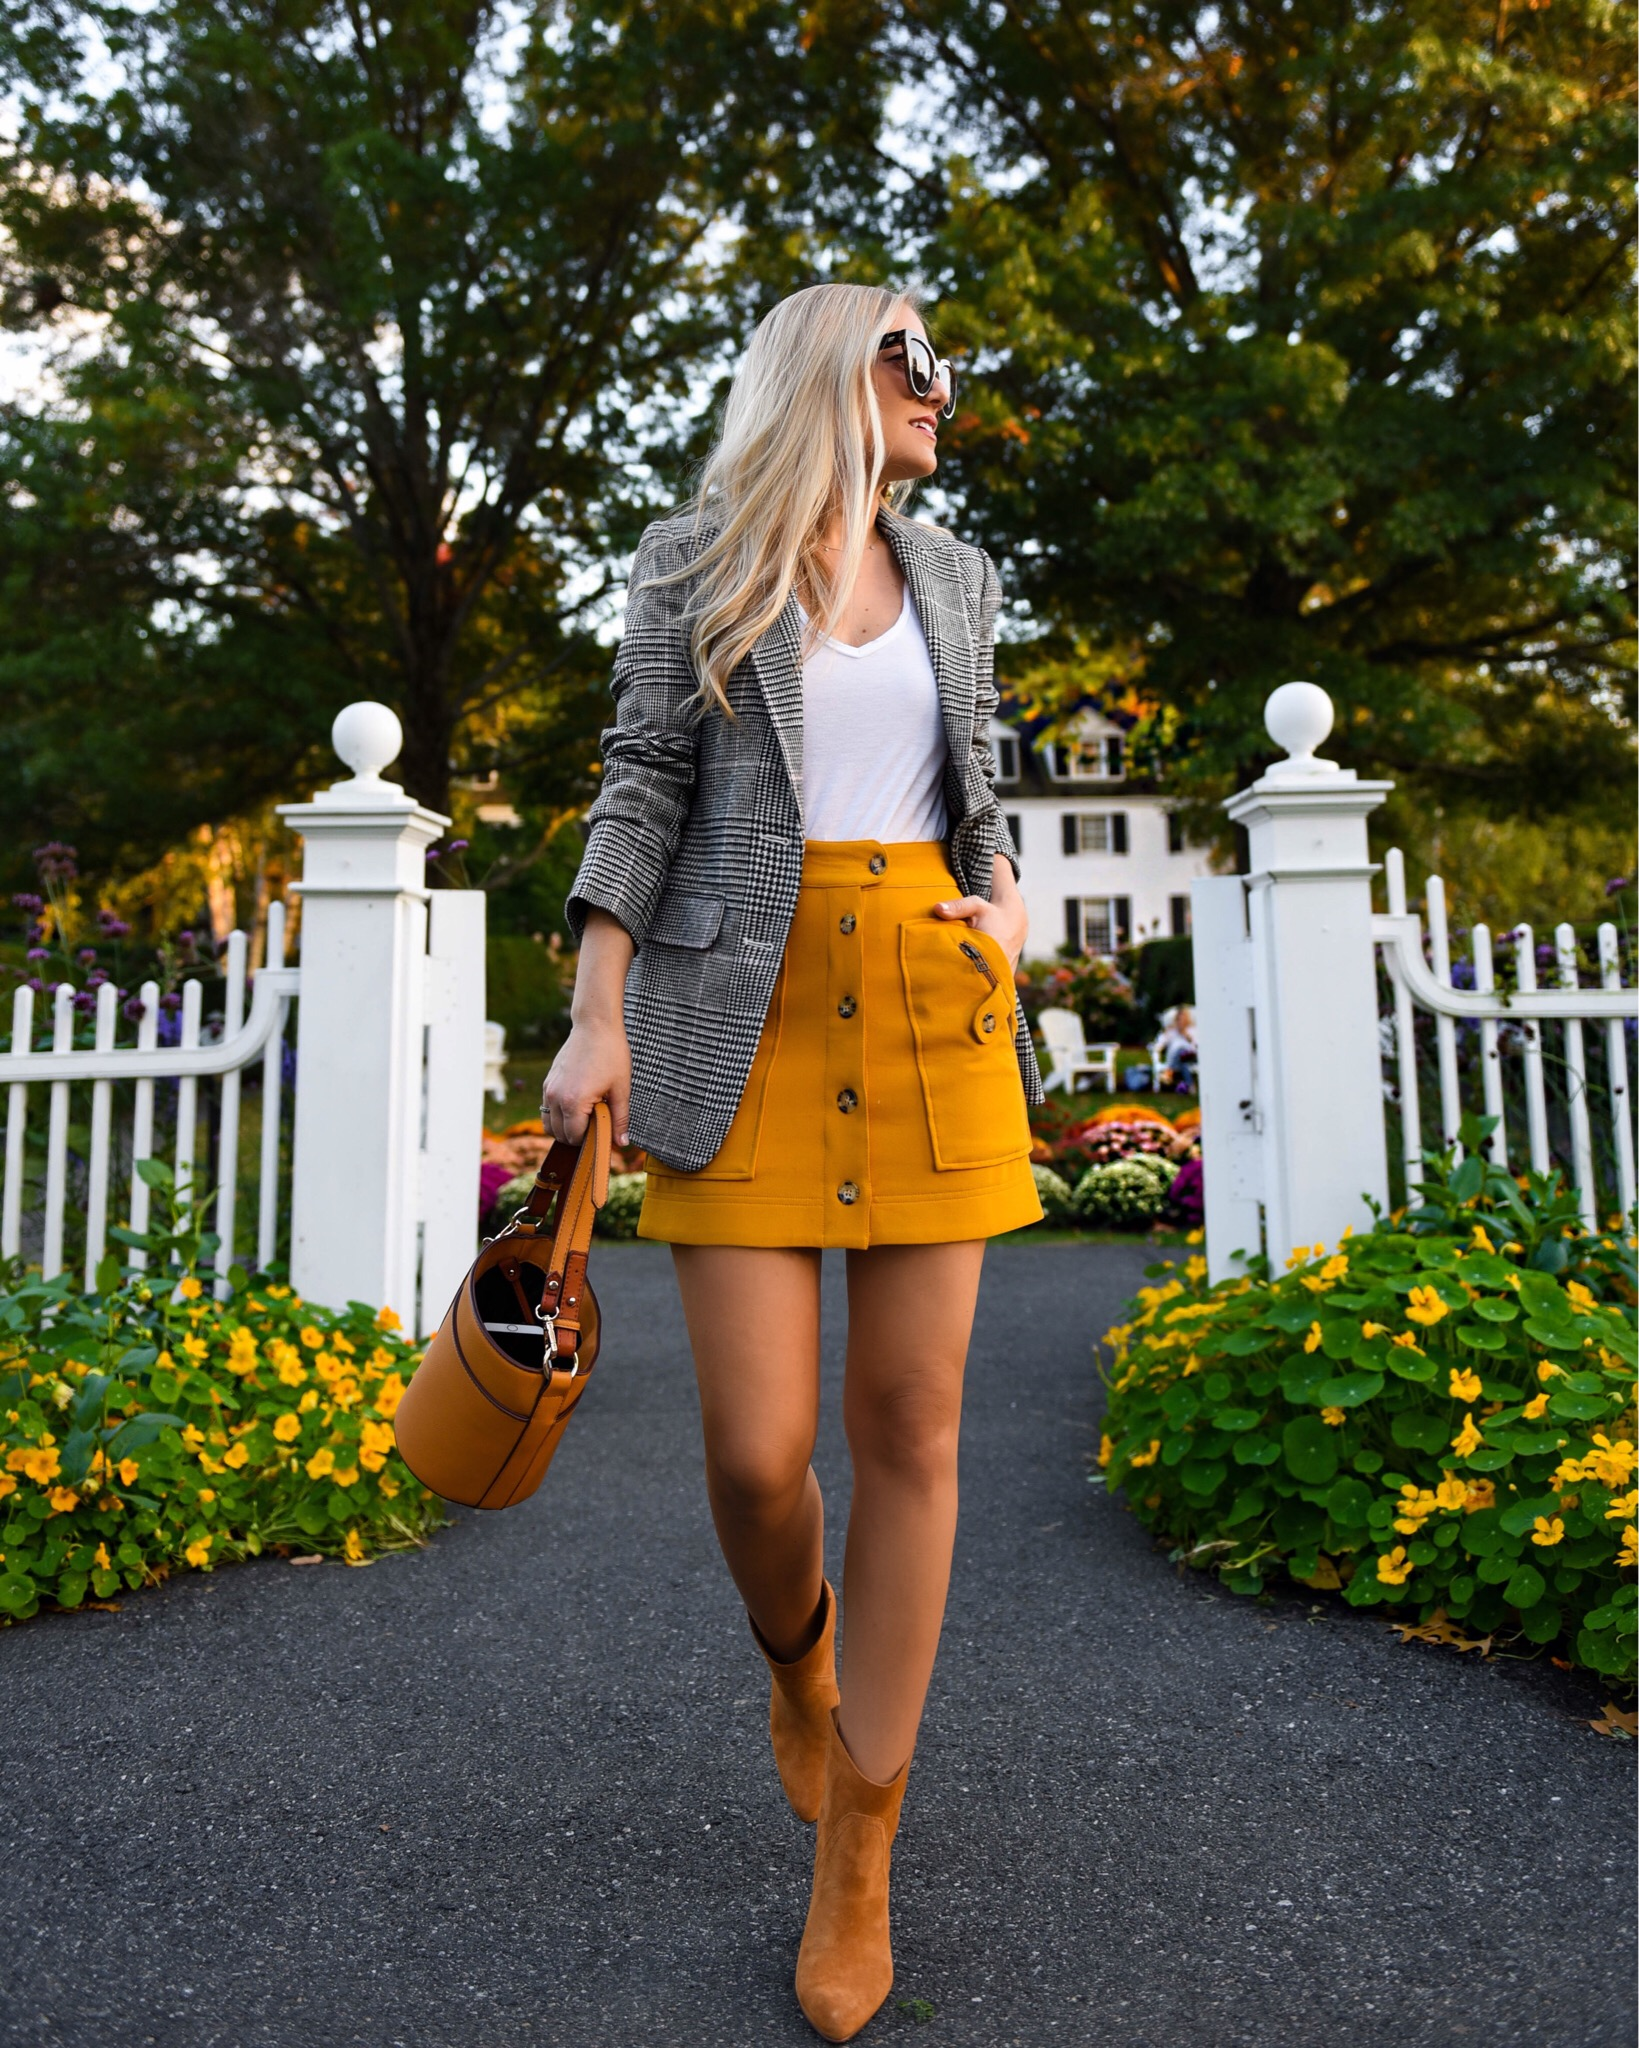 Lo-Murphy-Fall-outfit-mini-skirt-fall-look-ootd-dallas-blogger-plaid-blazer